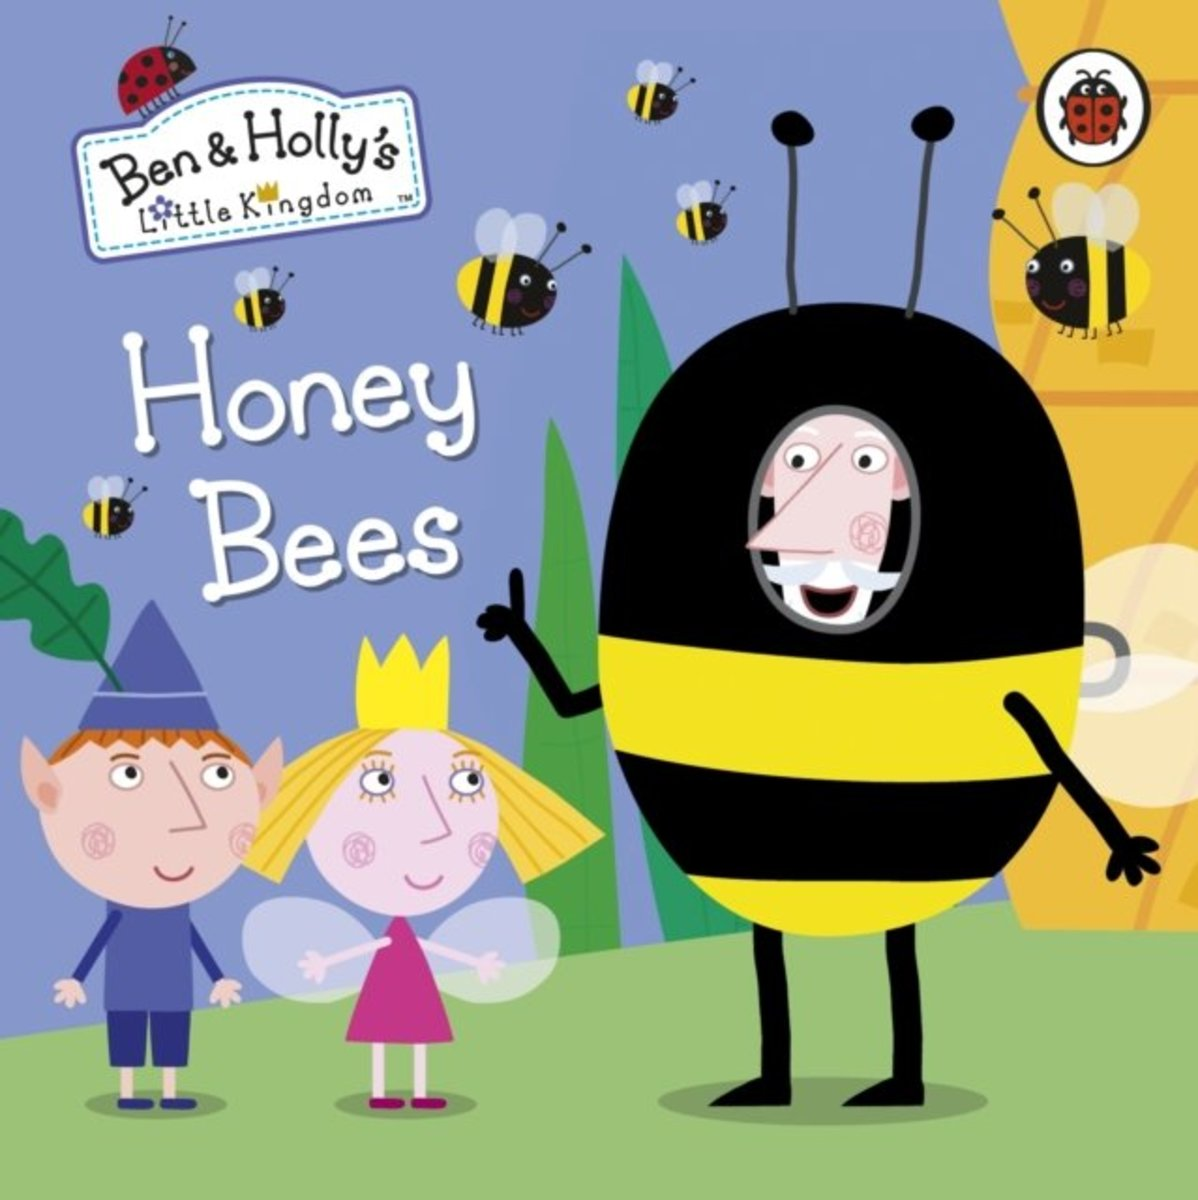 Ben and Holly's Little Kingdom: Honey Bees